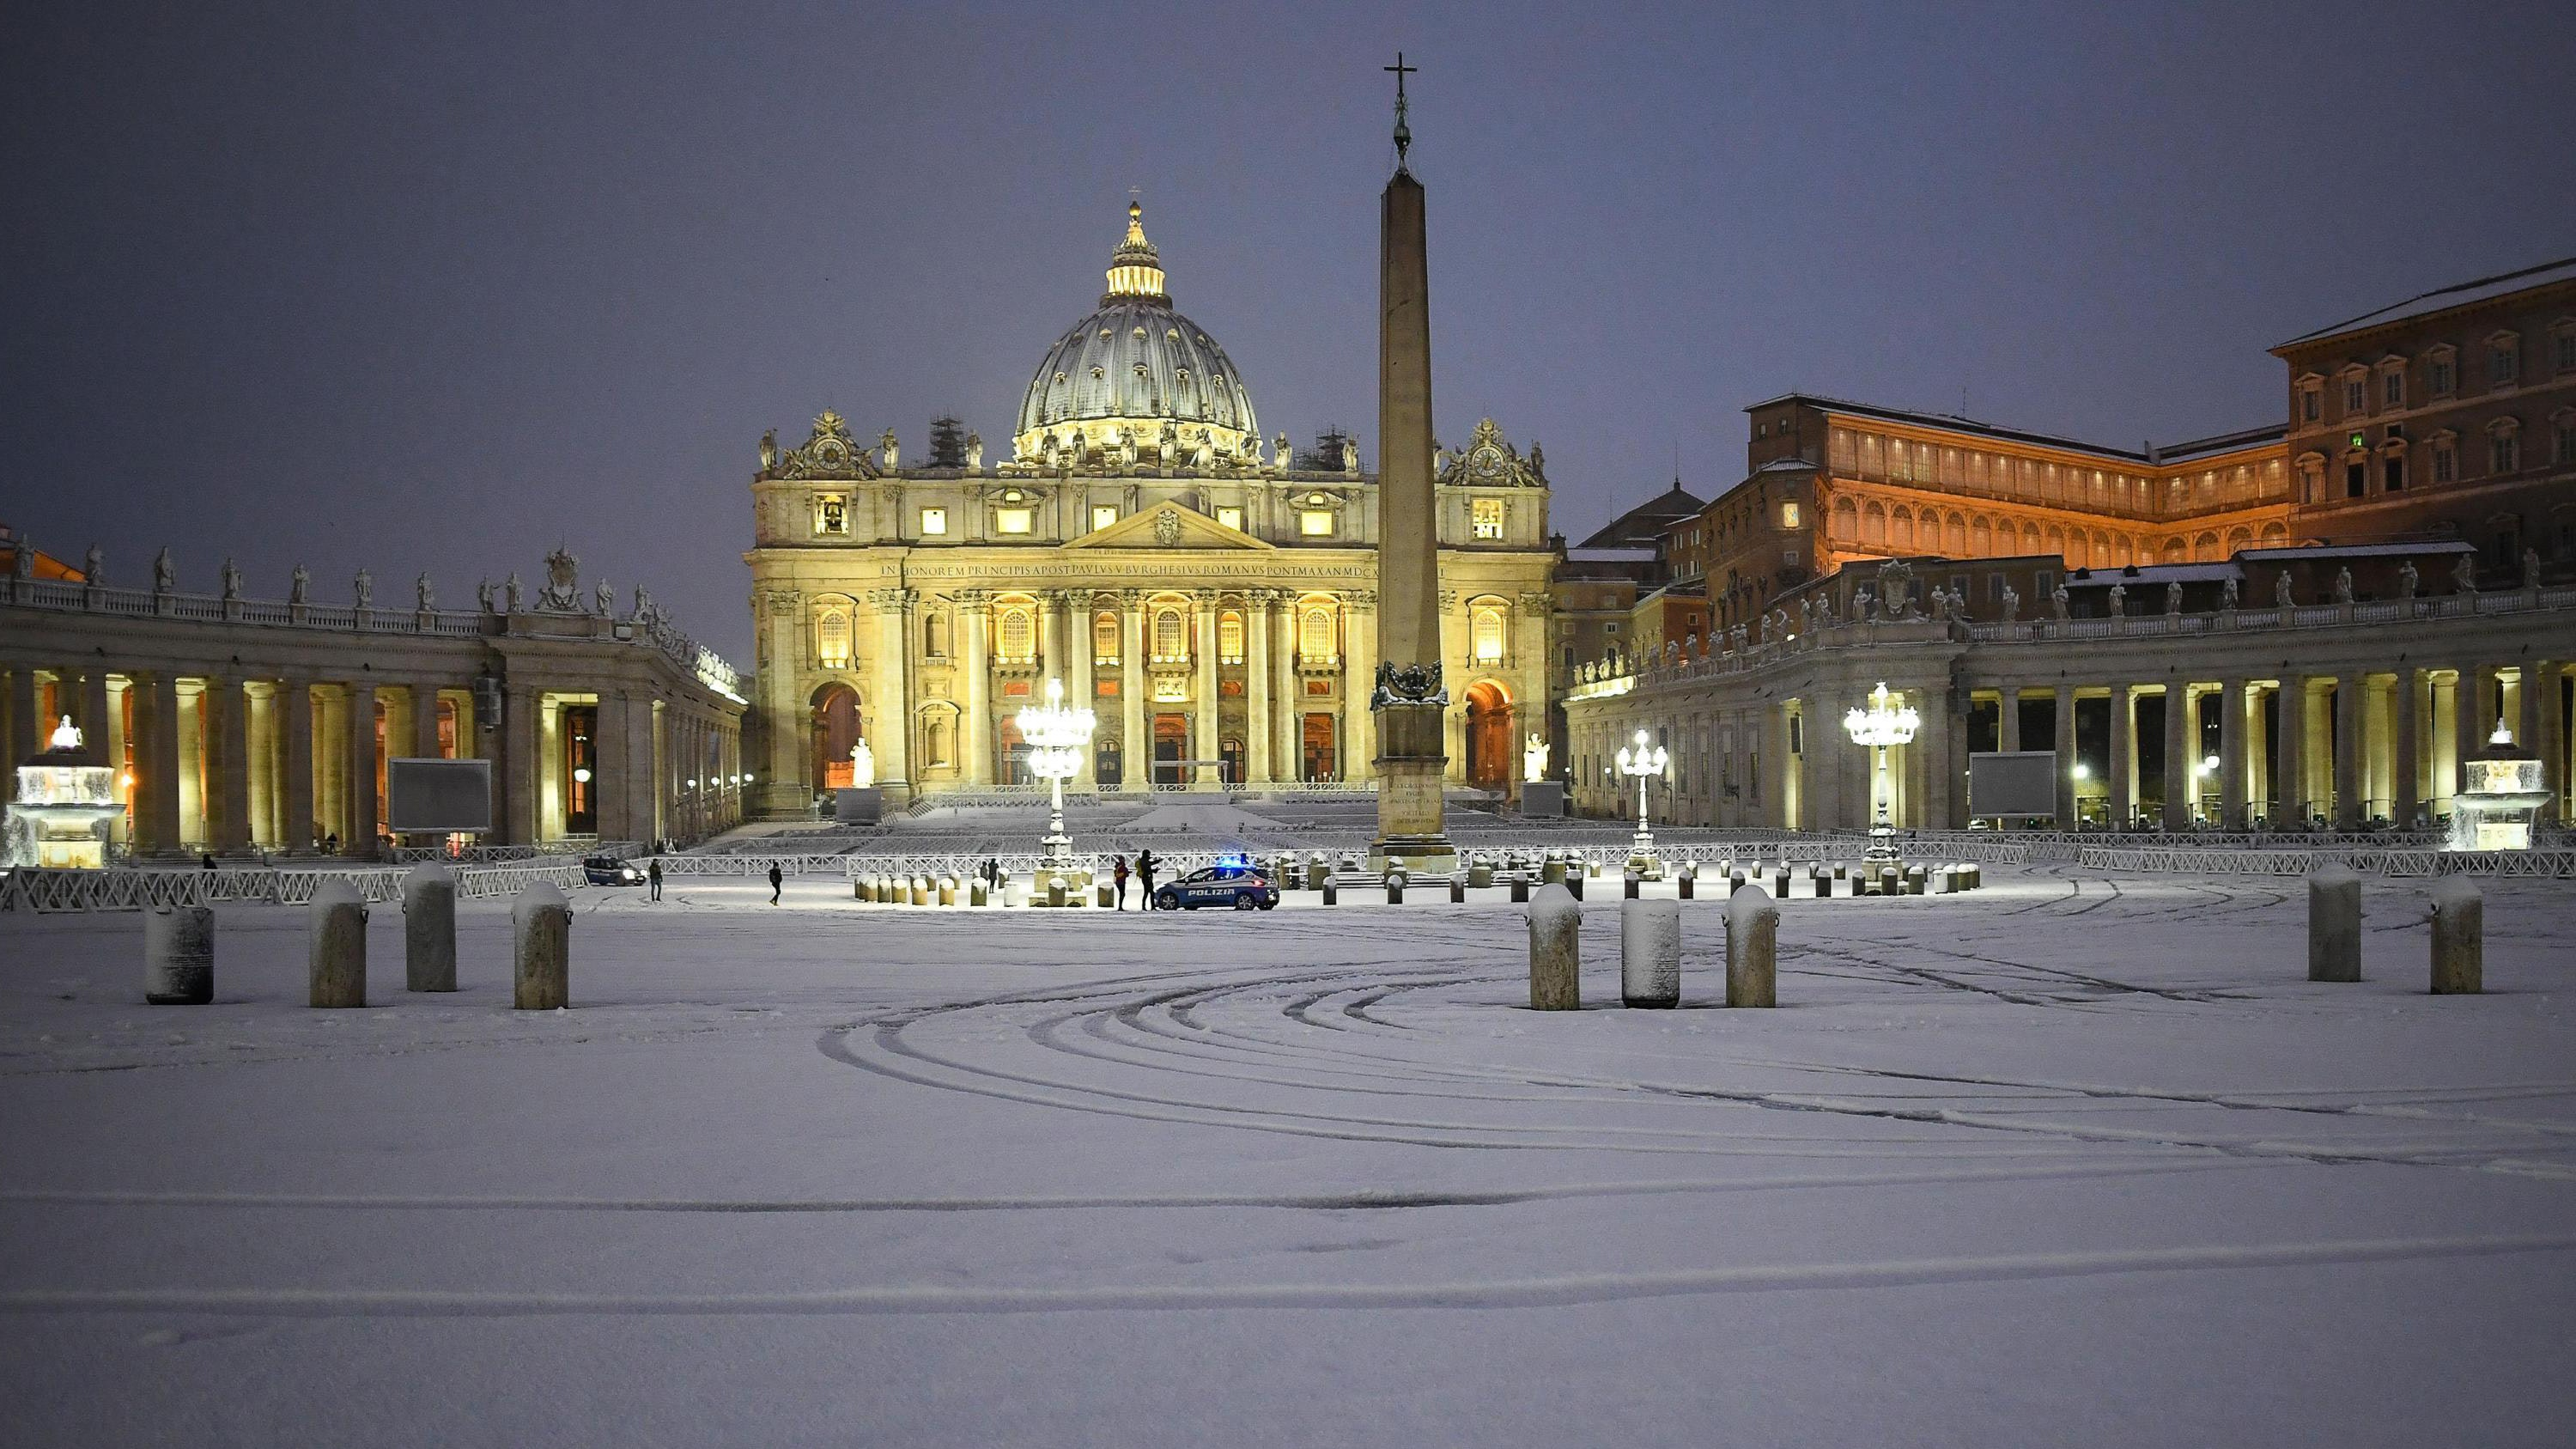 Schools shut as rare snow blankets Rome